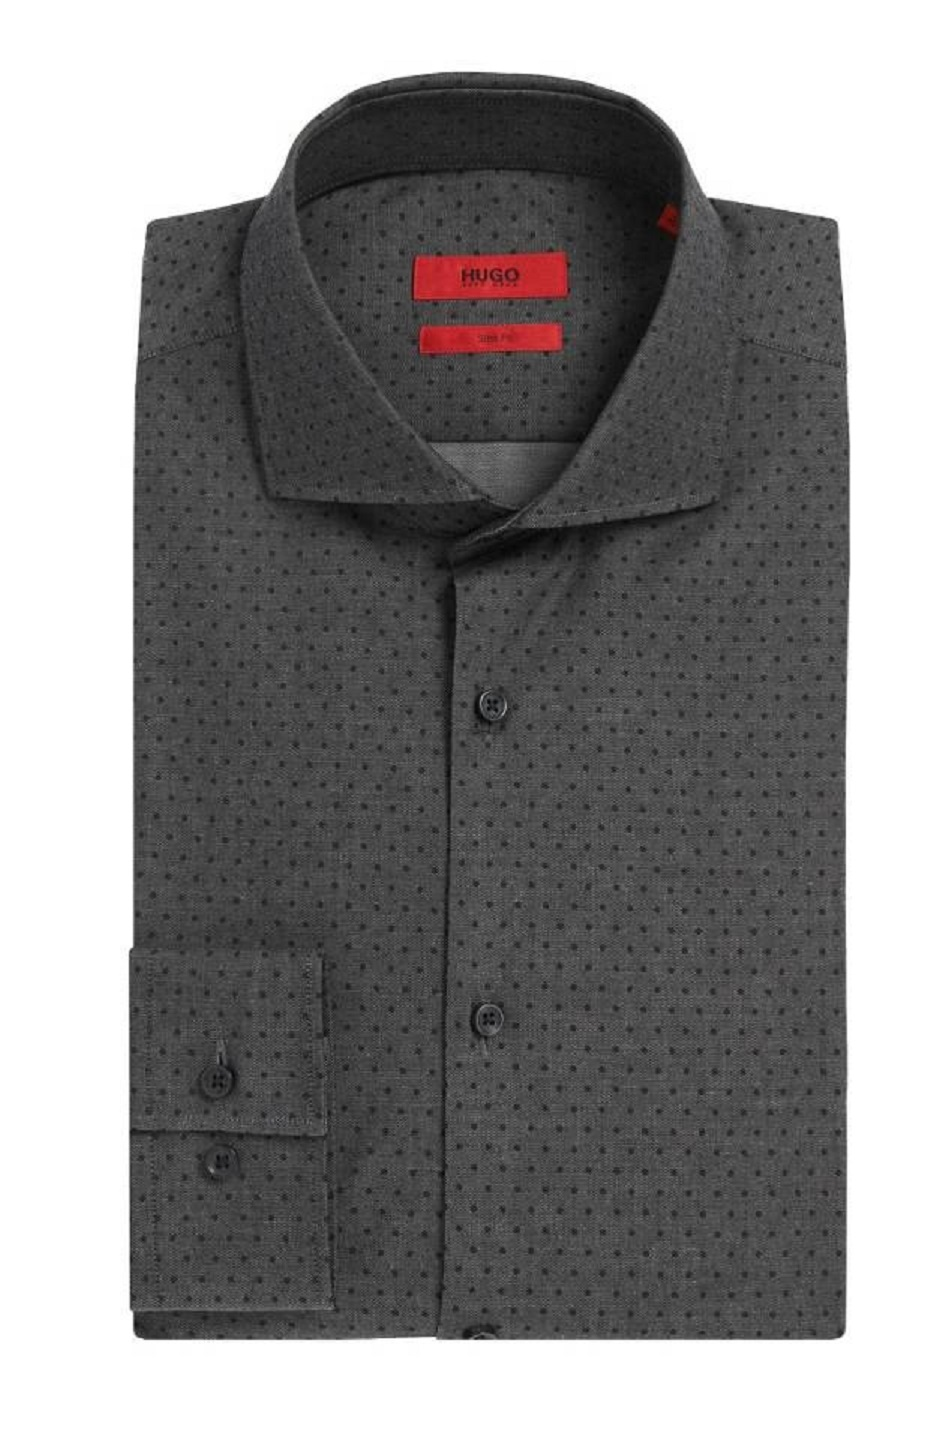 HUGO BOSS Camicia slim fit in cotone elasticizzato a pois C-Jason by HUGO